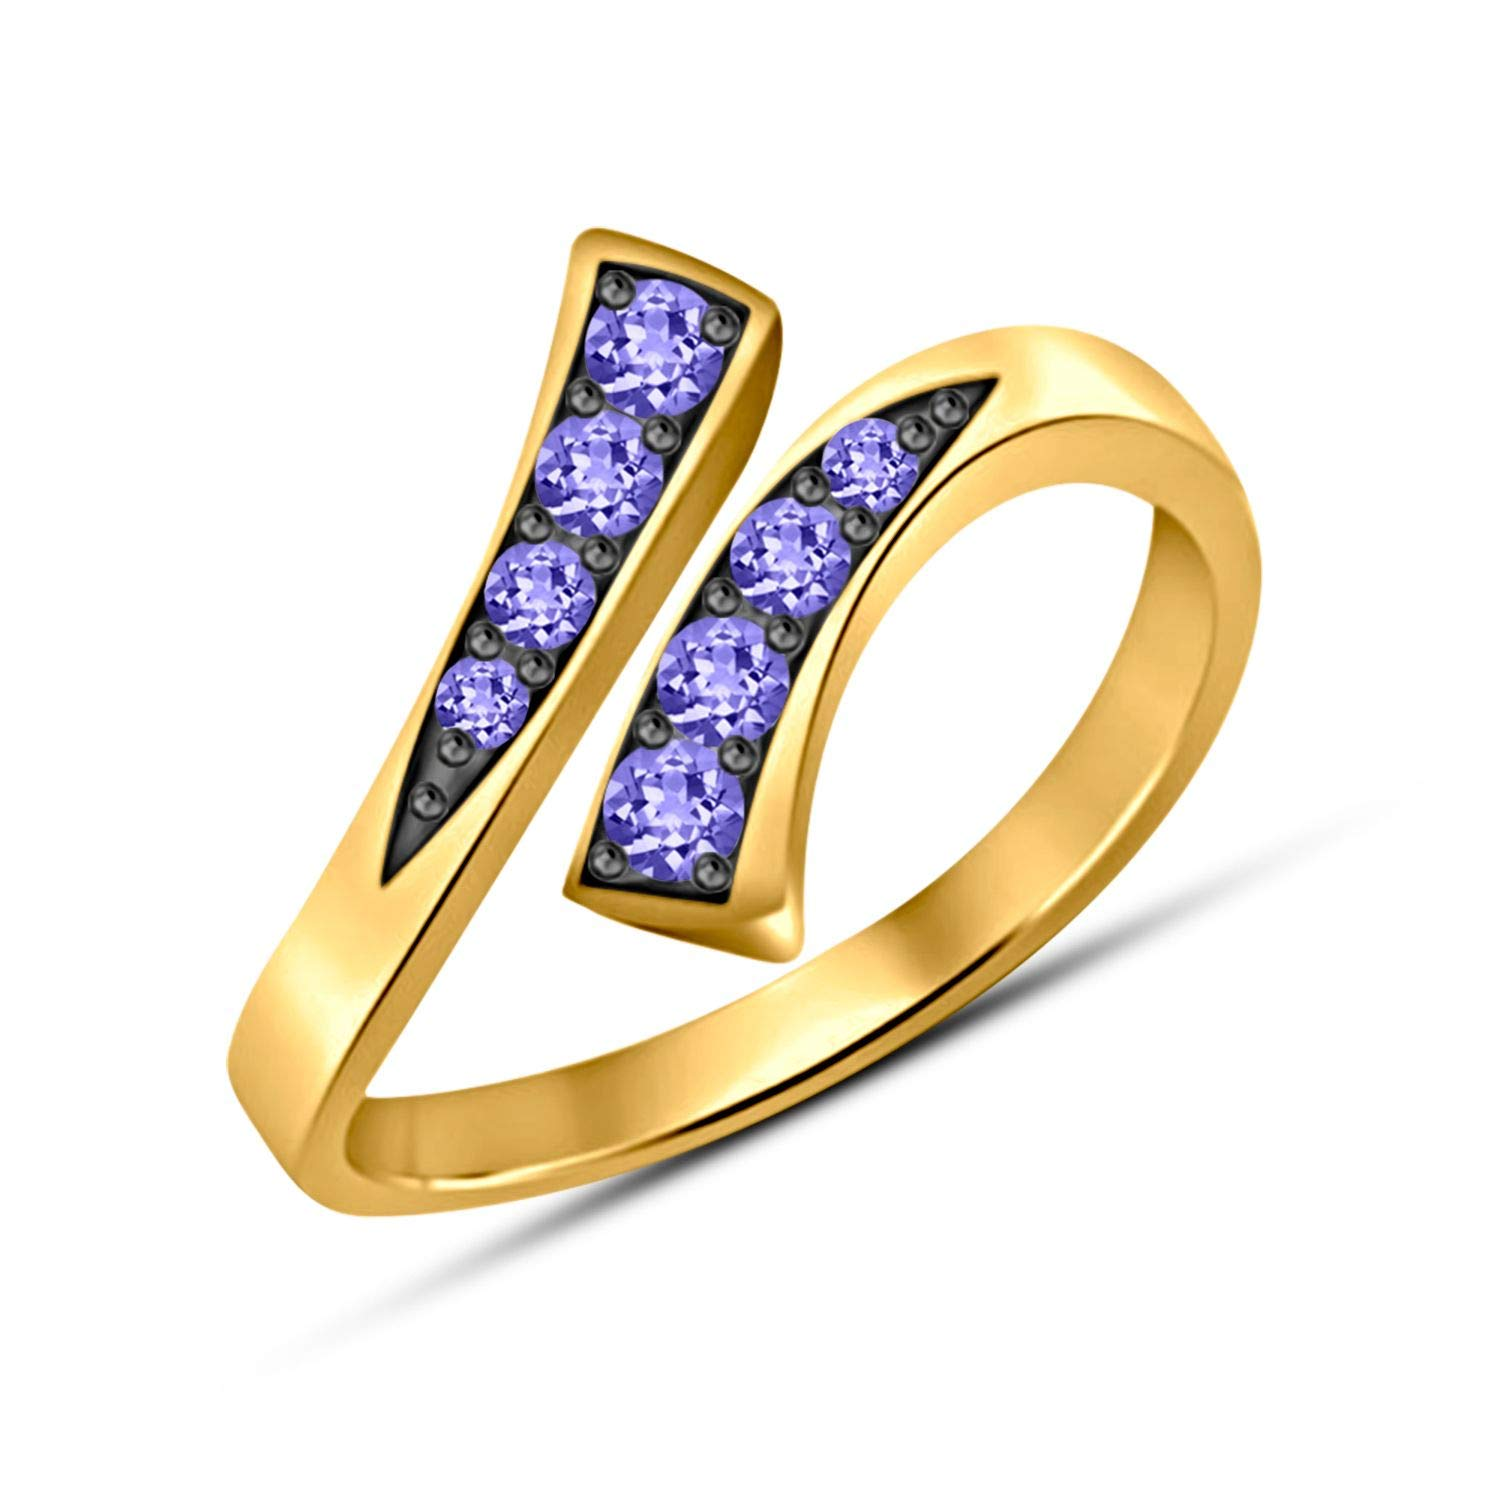 Gemstar Jewellery Brilliant Tanzanite 14k Two Tone Gold Finishing Adjustable Bypass Ring in 925 Silver